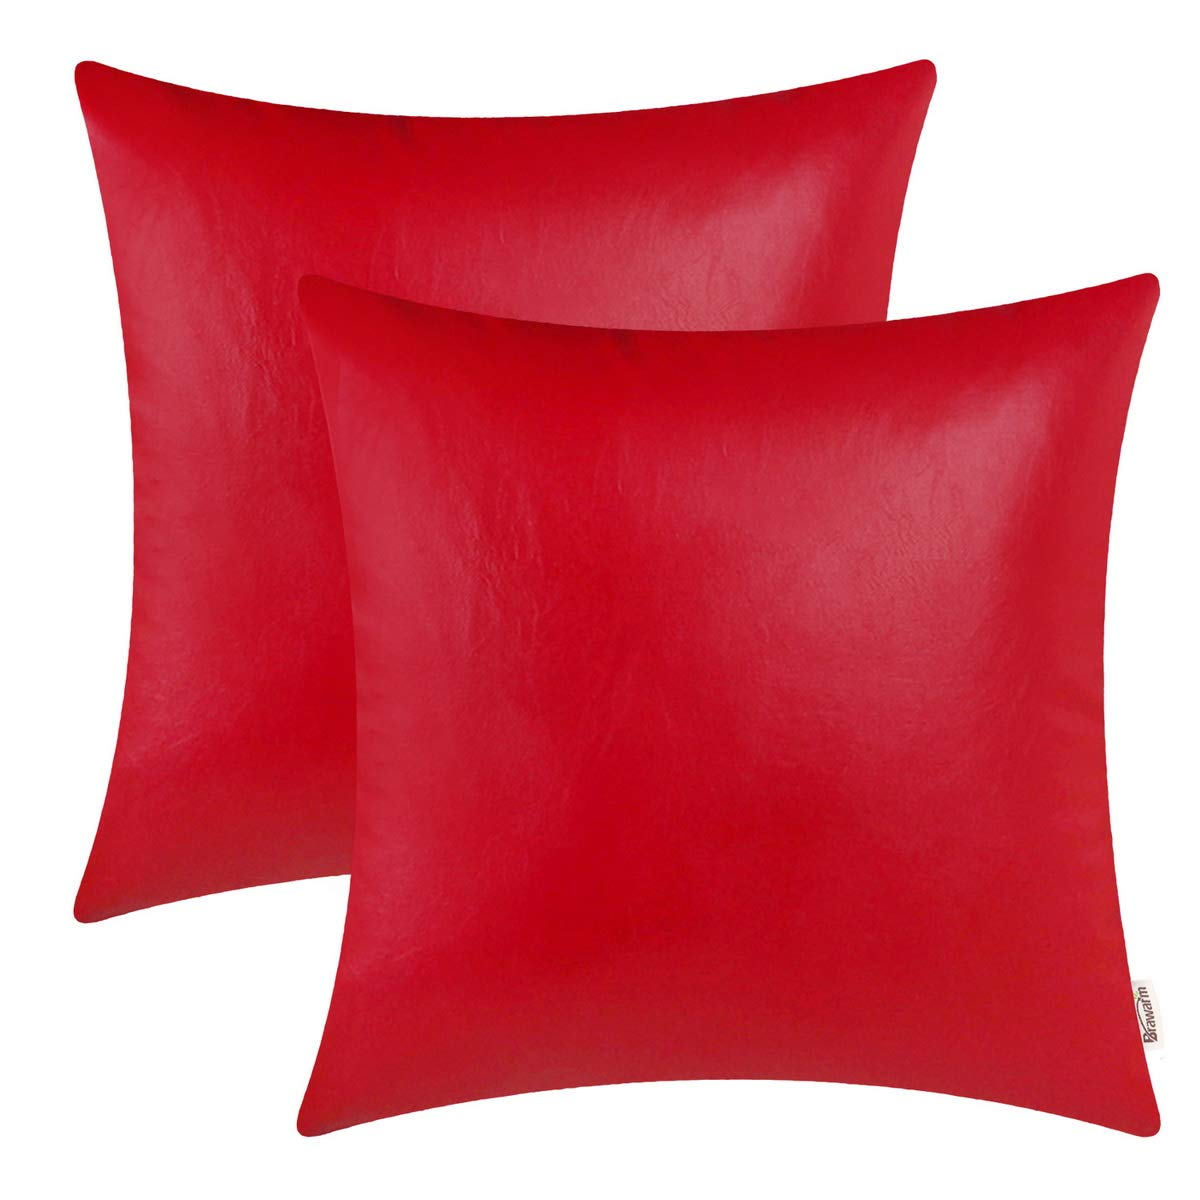 BRAWARM Pack of 2 Cozy Throw Pillow Covers Cases for Couch Sofa Home Decoration Solid Dyed Soft Faux Leather Both Sides 16 X 16 Inches Christmas Red